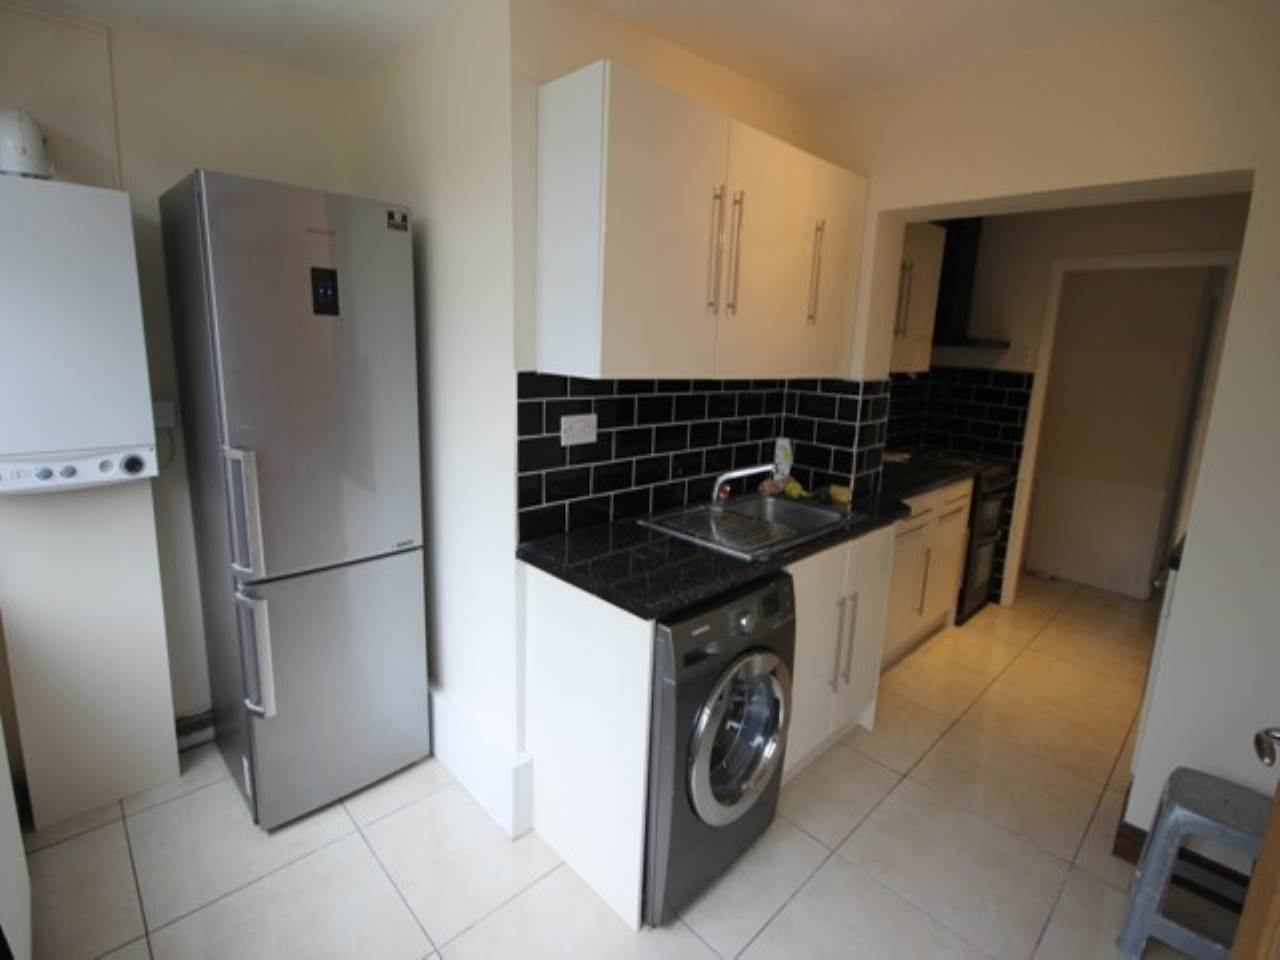 2 bed apartment to rent in Hainault, IG6